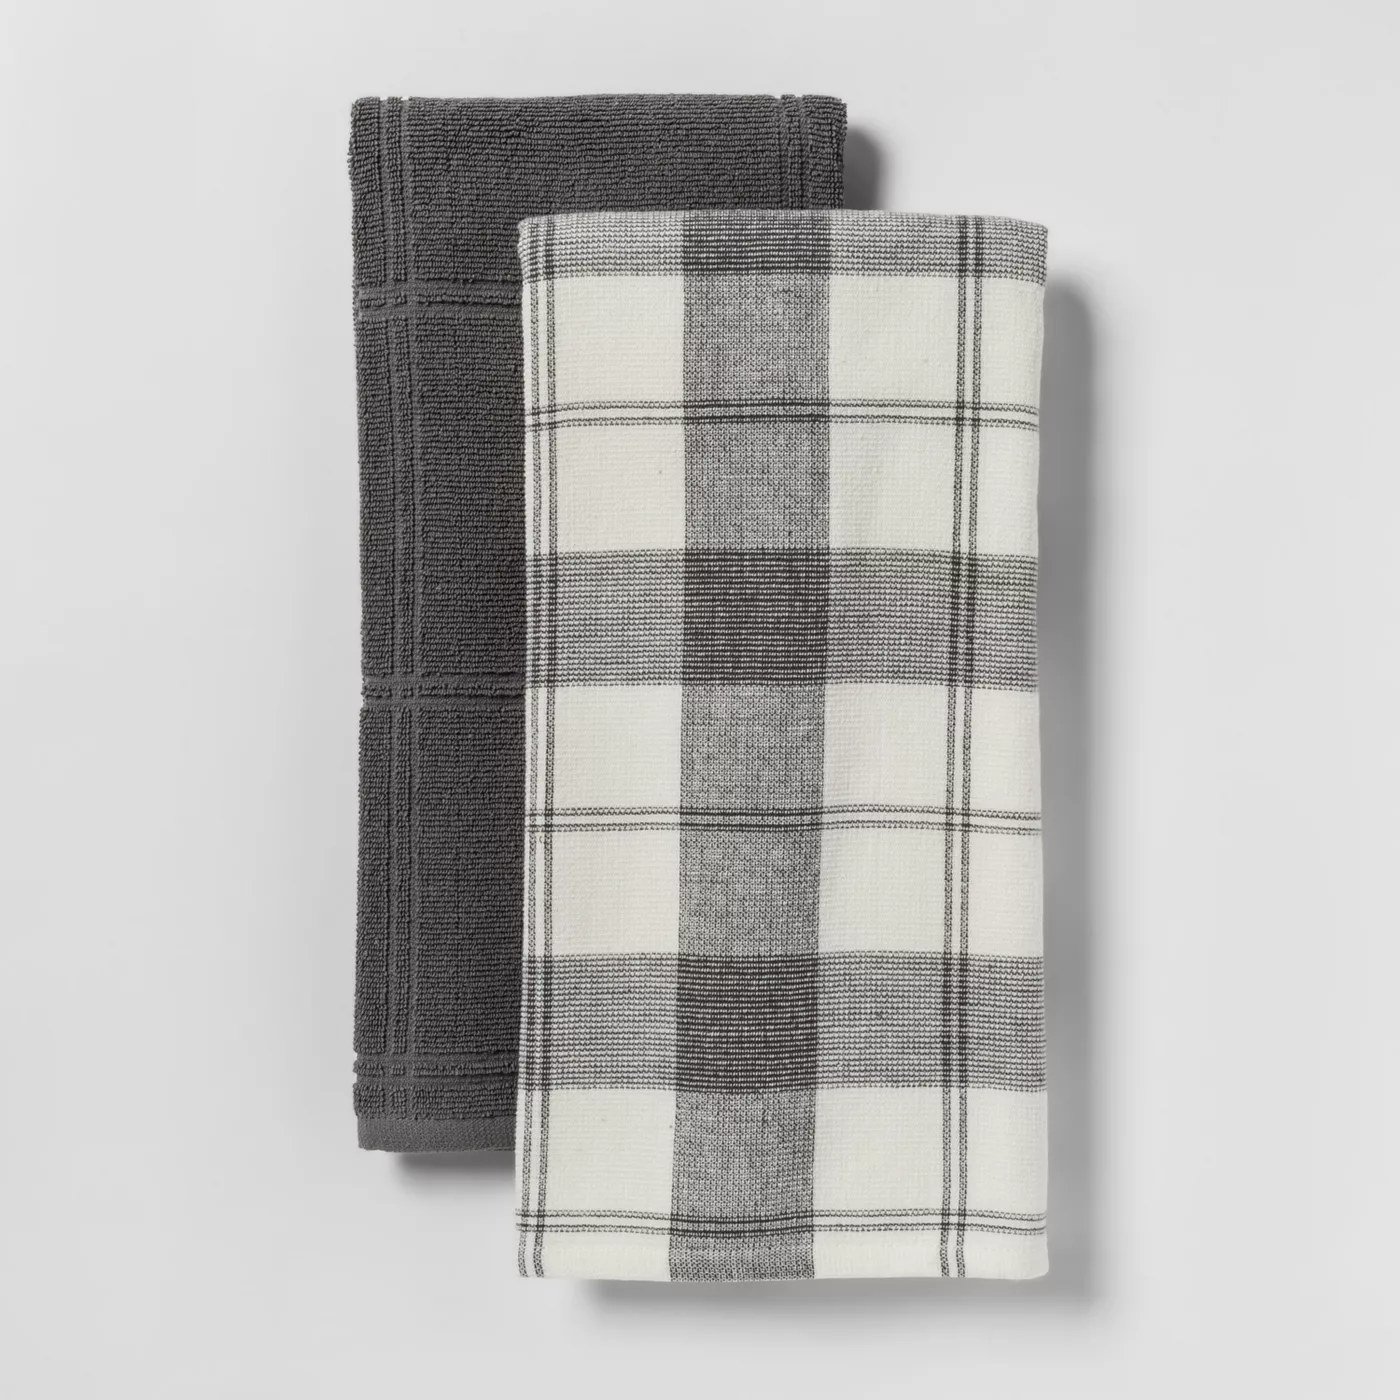 The towel set, which includes one solid towel and one with a checkered pattern